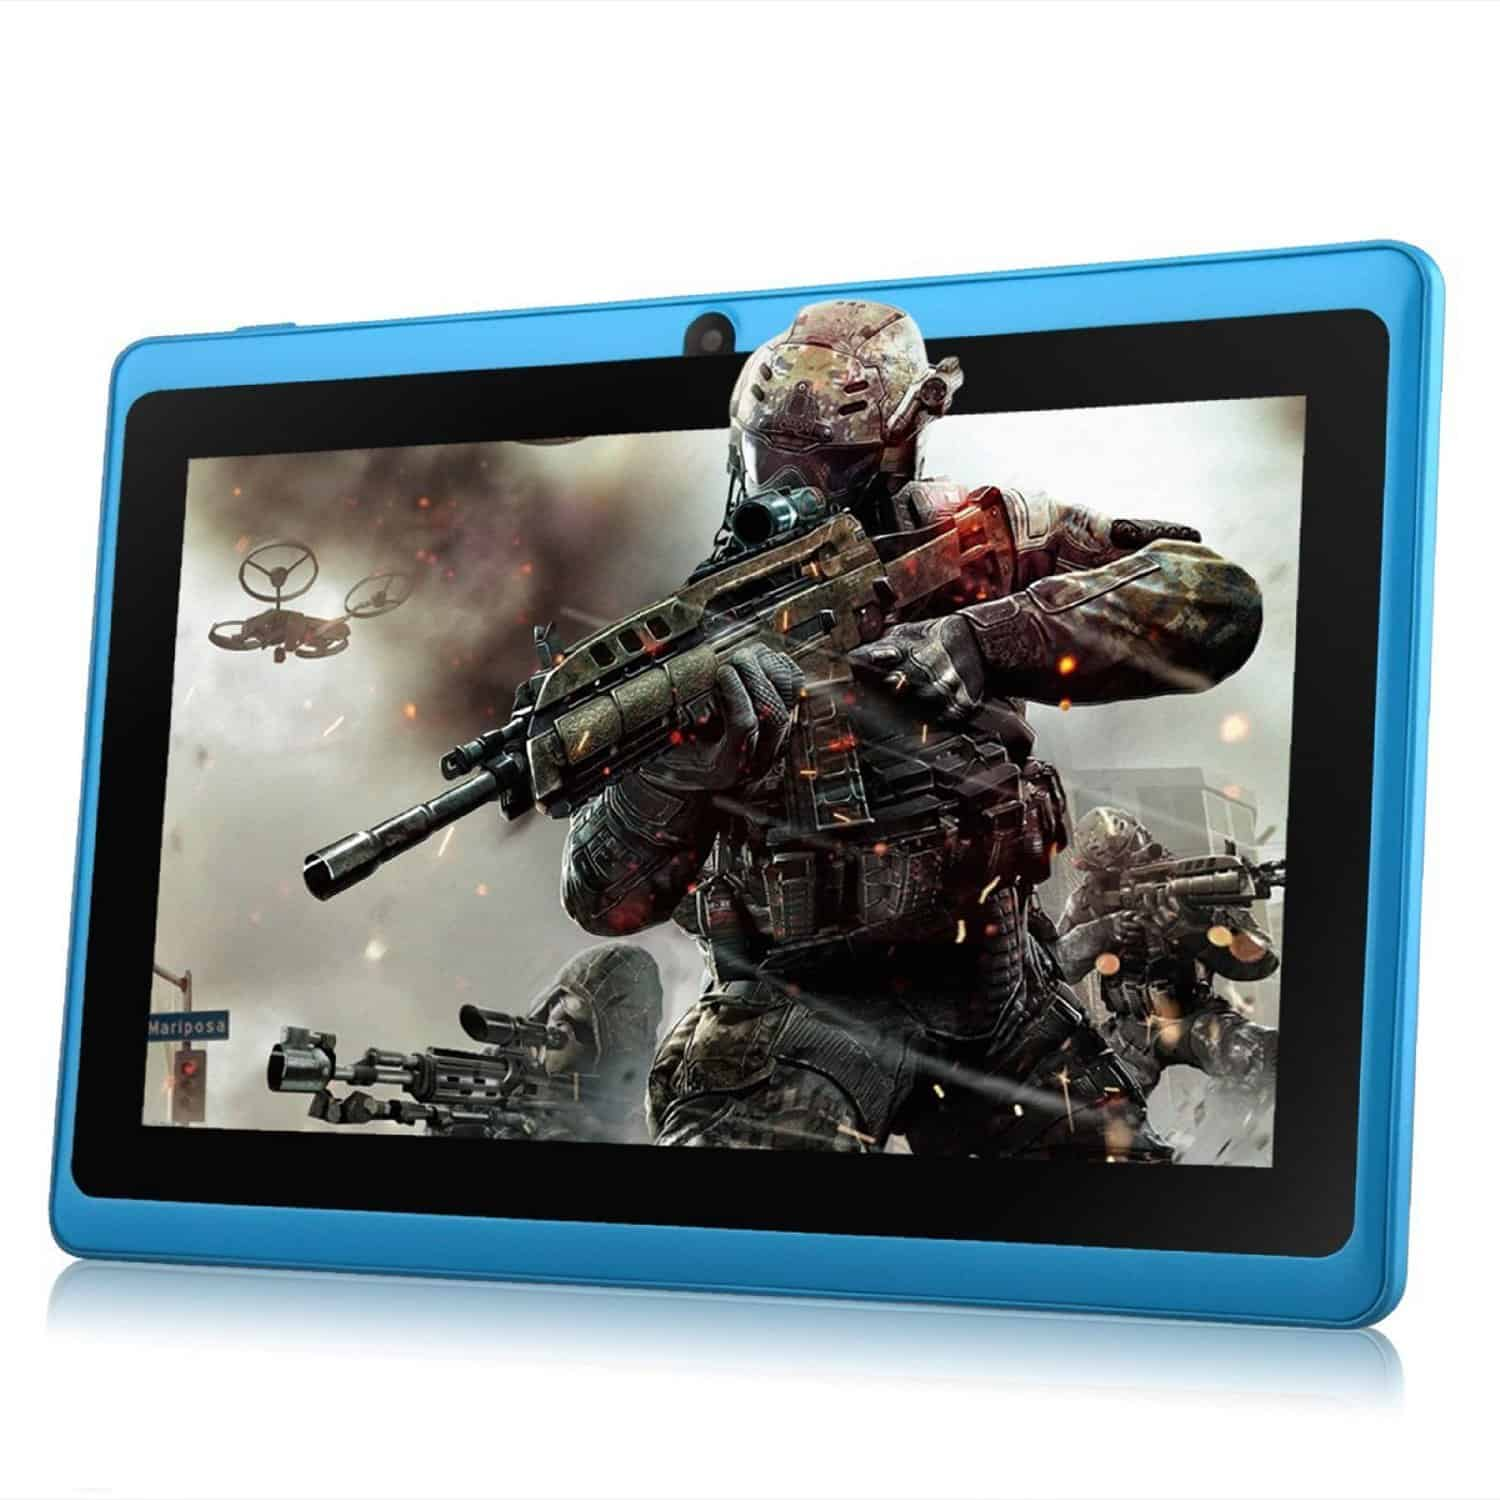 Arespark Tablet